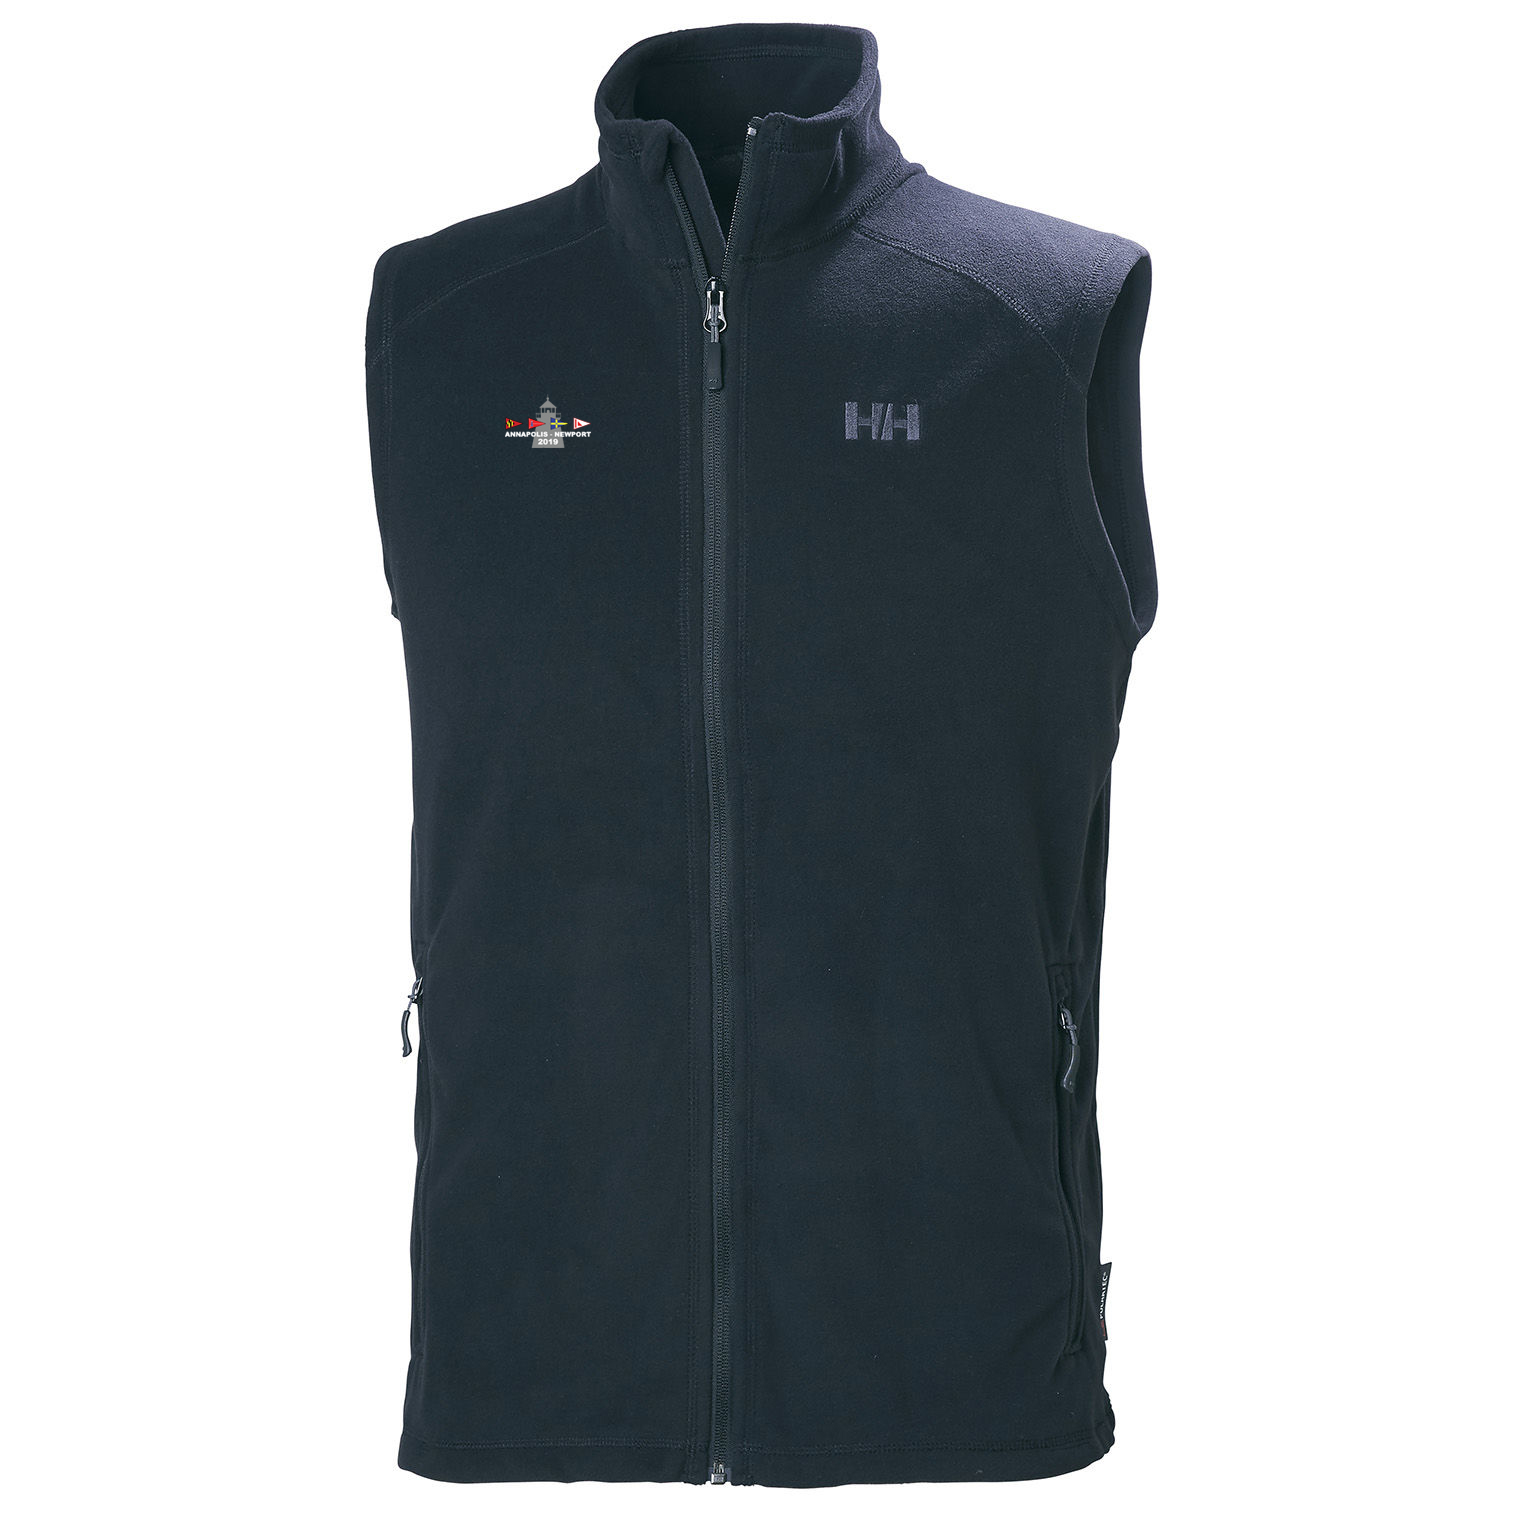 A2N19 - HELLY HANSEN WOMEN'S DAYBREAKER FLEECE VEST